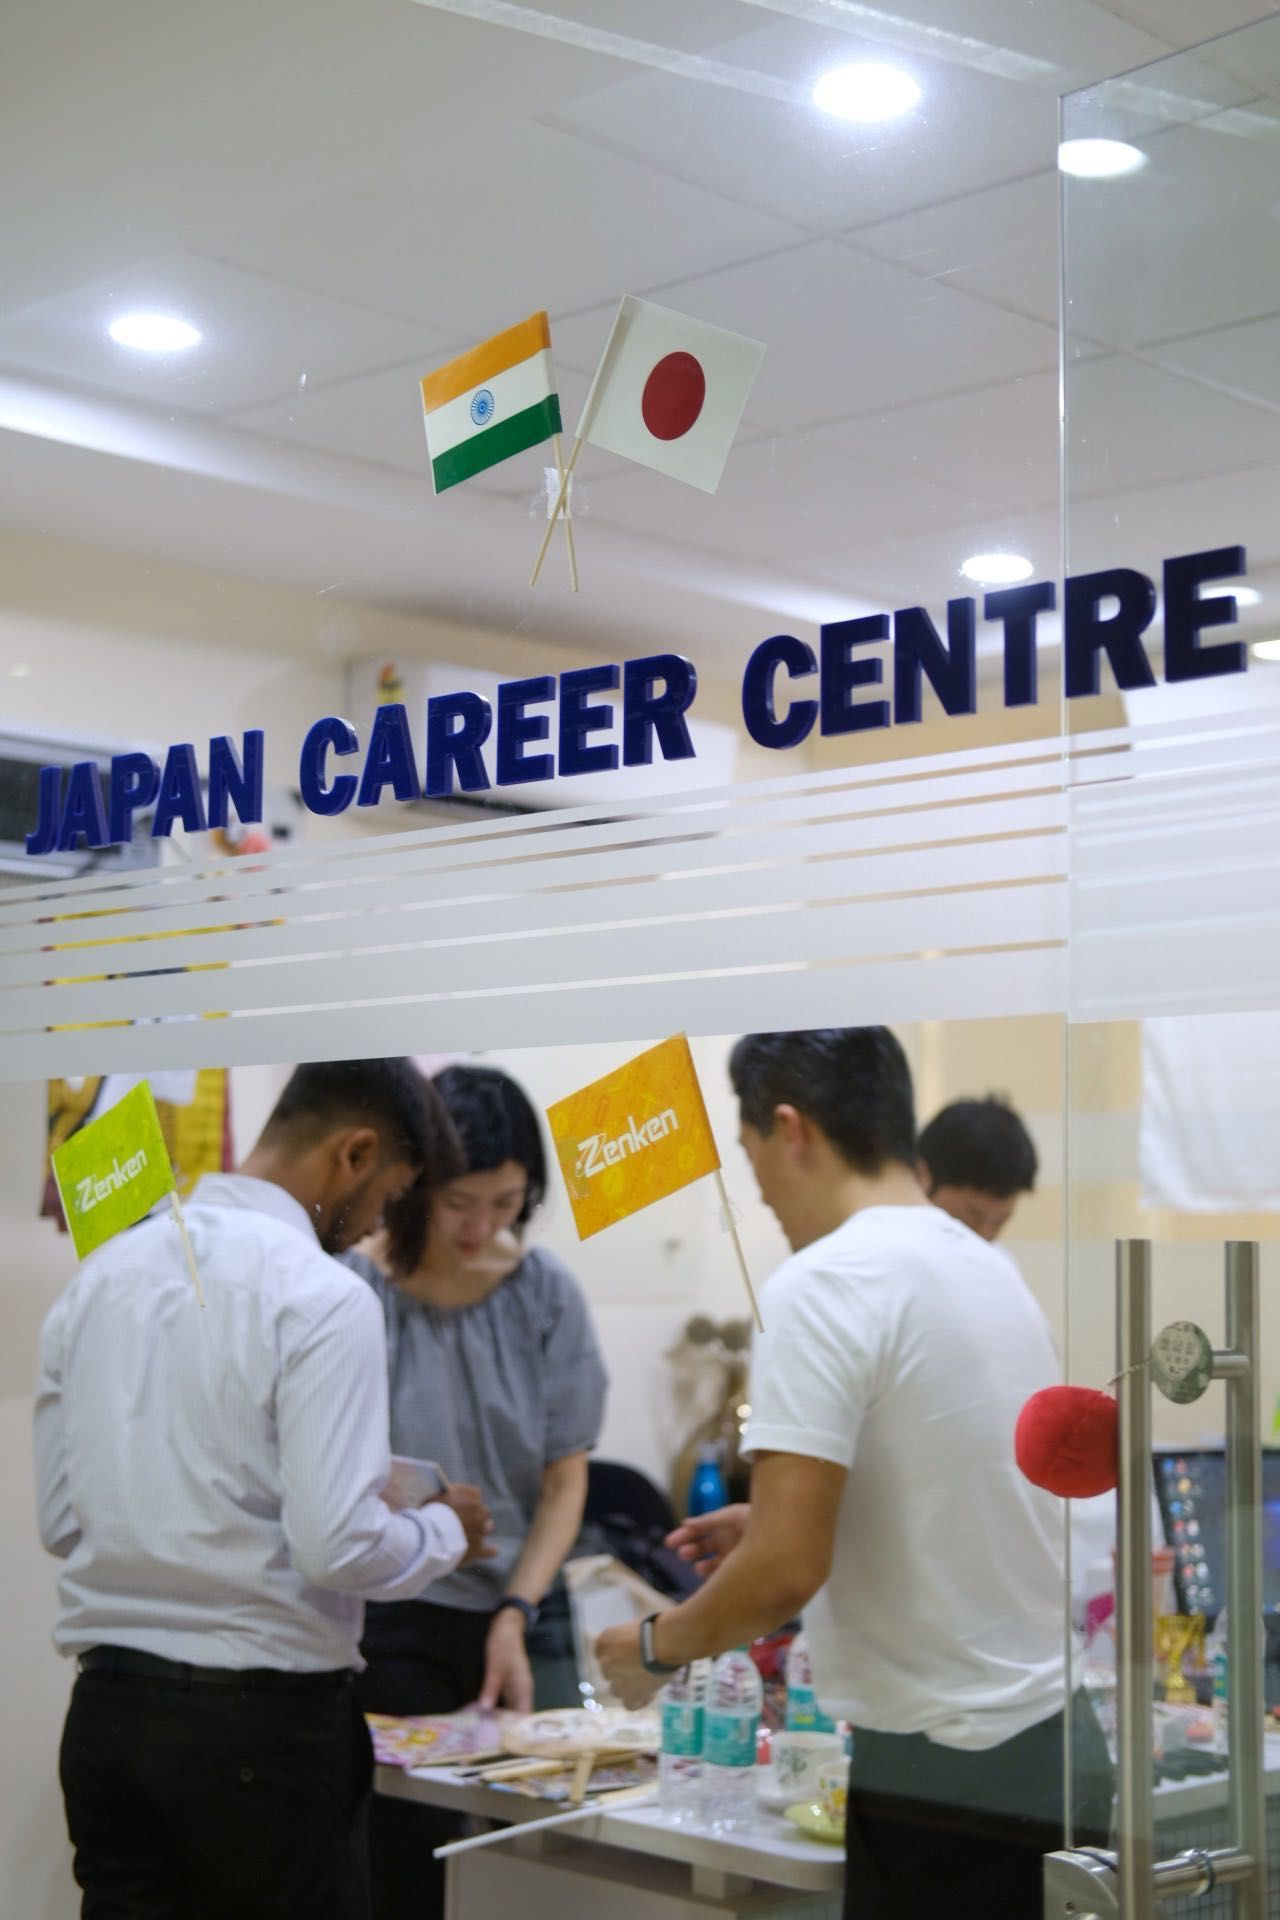 Zenken has opened Japan Career Centers in collaboration with Indian universities. (Courtesy Zenken)